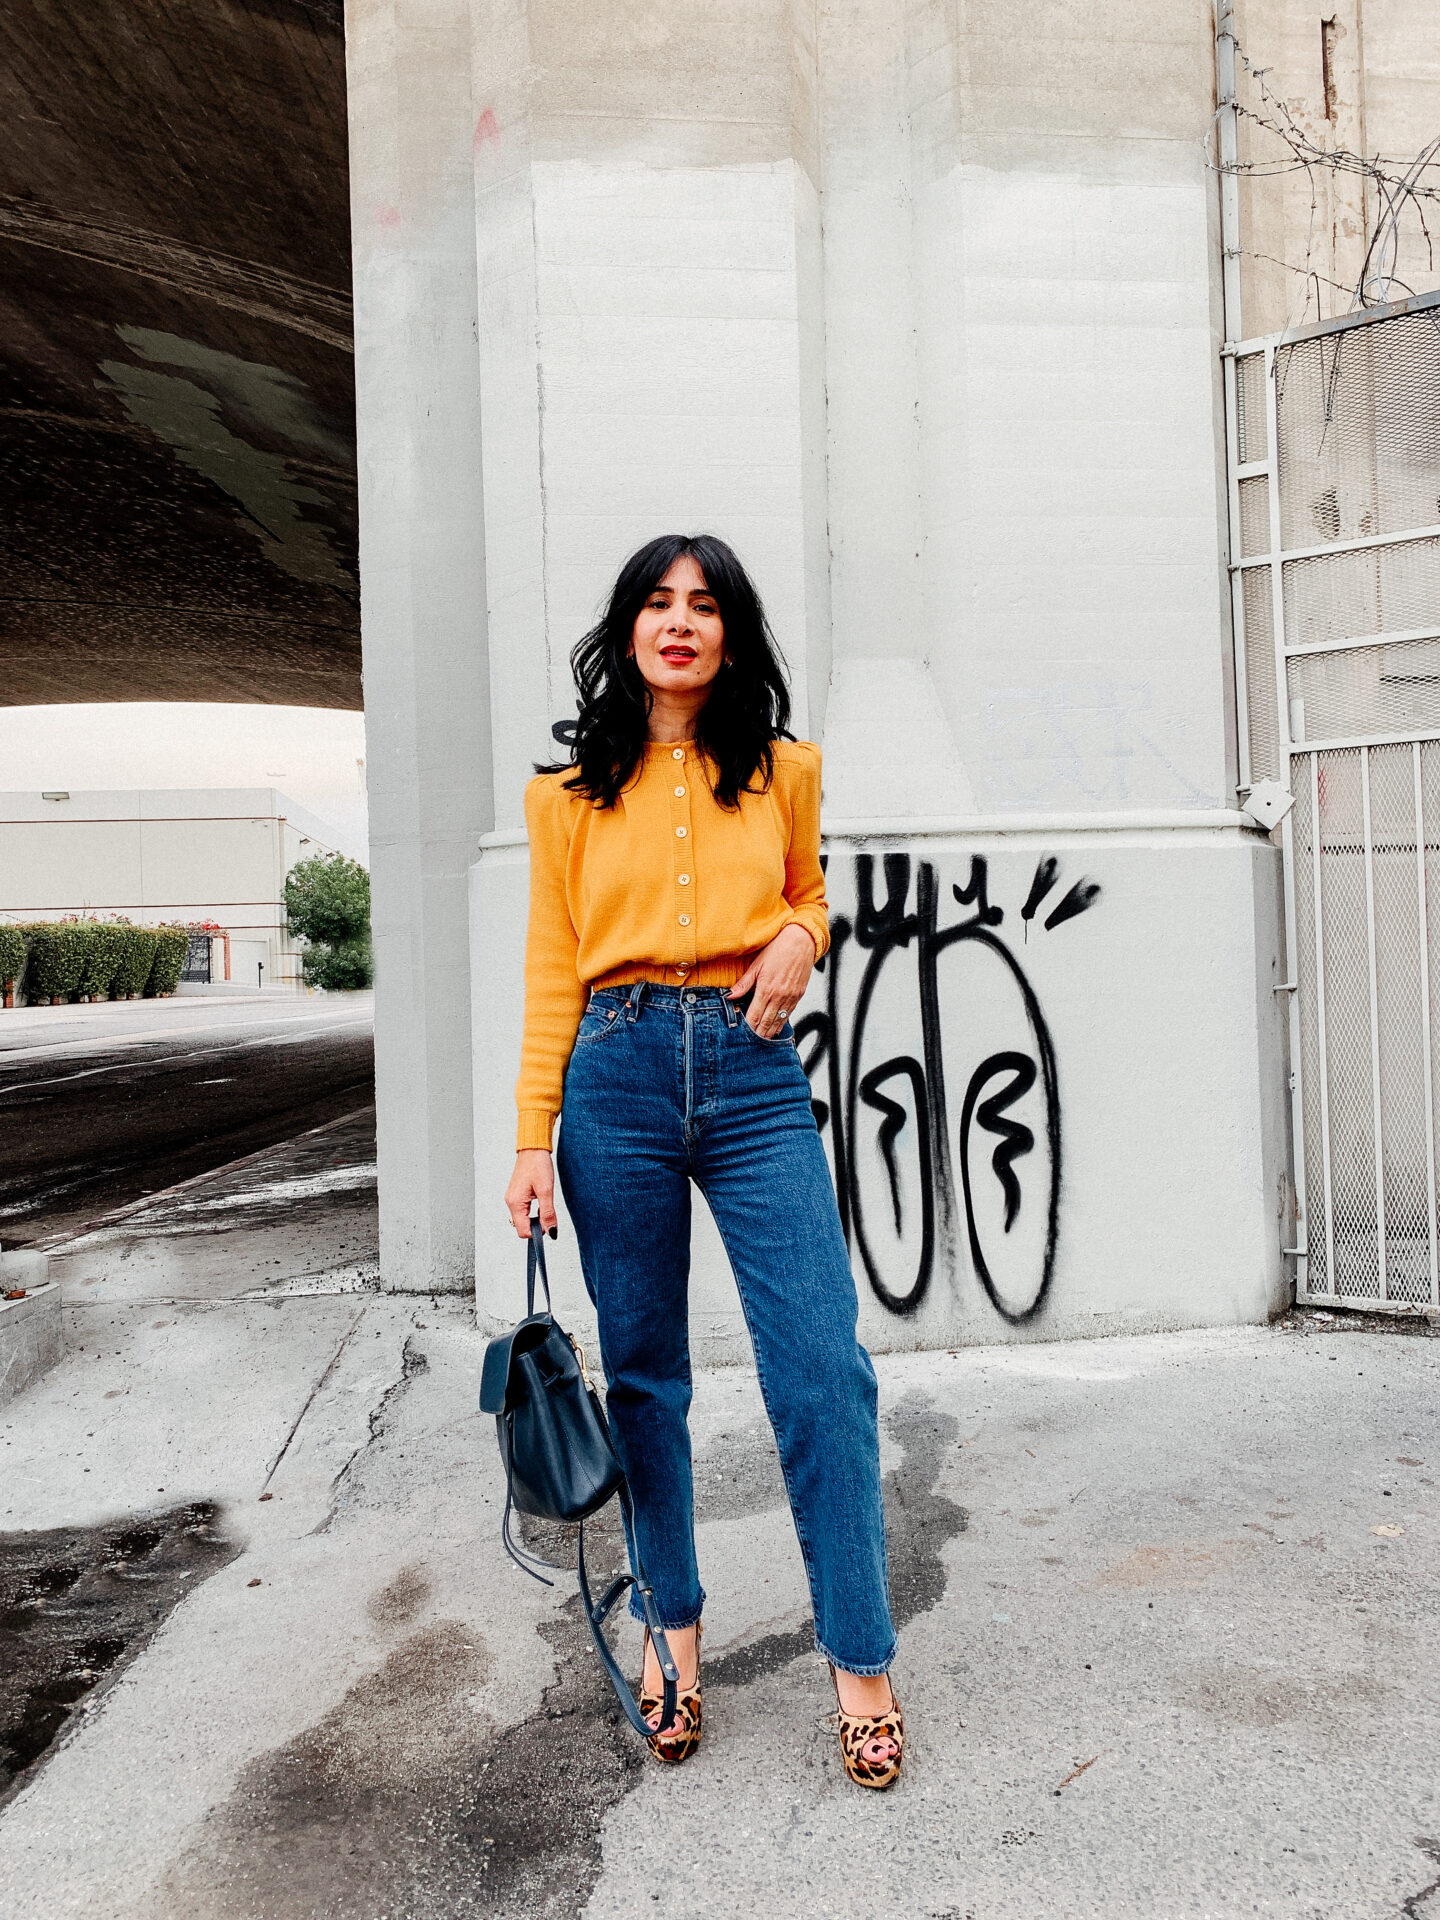 The Only High Waist Jeans You Need - Levi's Ribcage Jeans